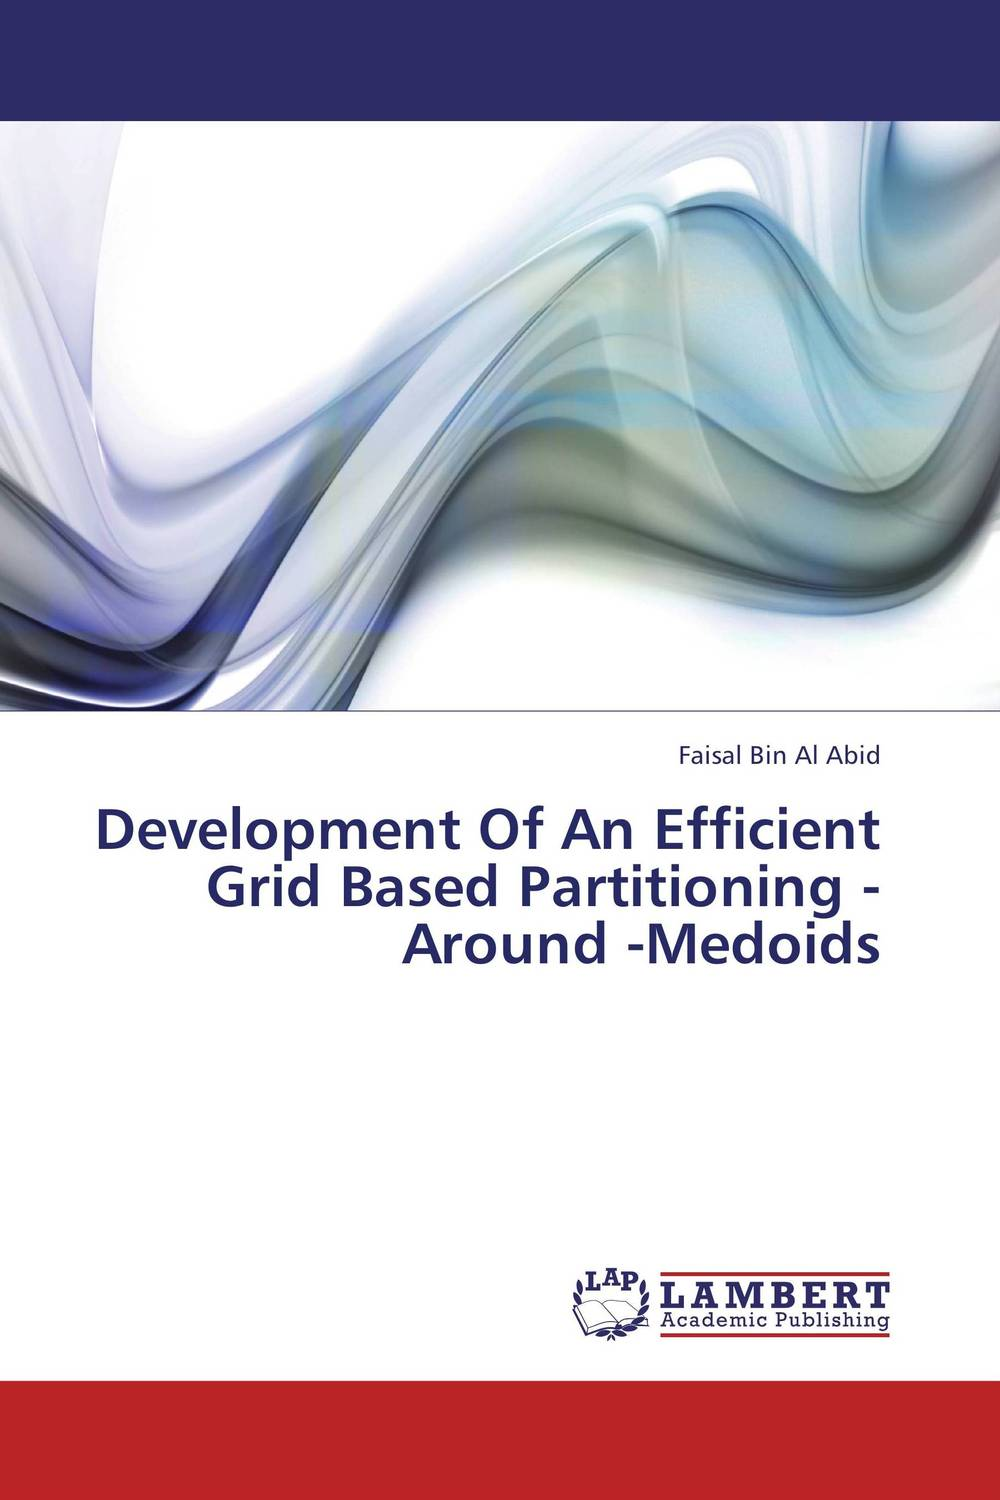 Development Of An Efficient Grid Based Partitioning -Around -Medoids shakespeare w the merchant of venice книга для чтения